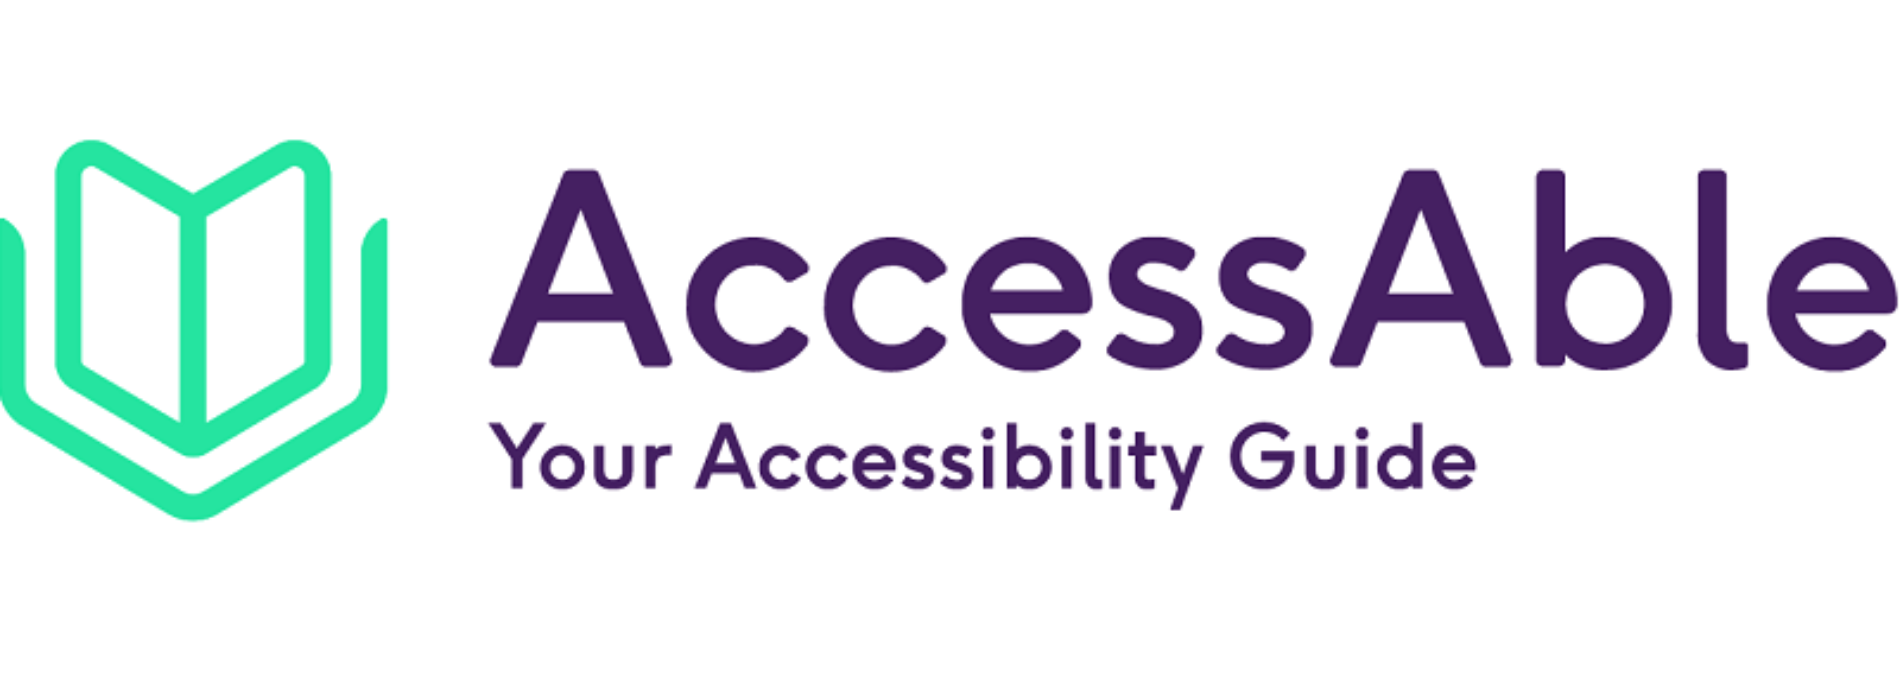 Accessibility guides for Manchester and Leeds – help make it happen